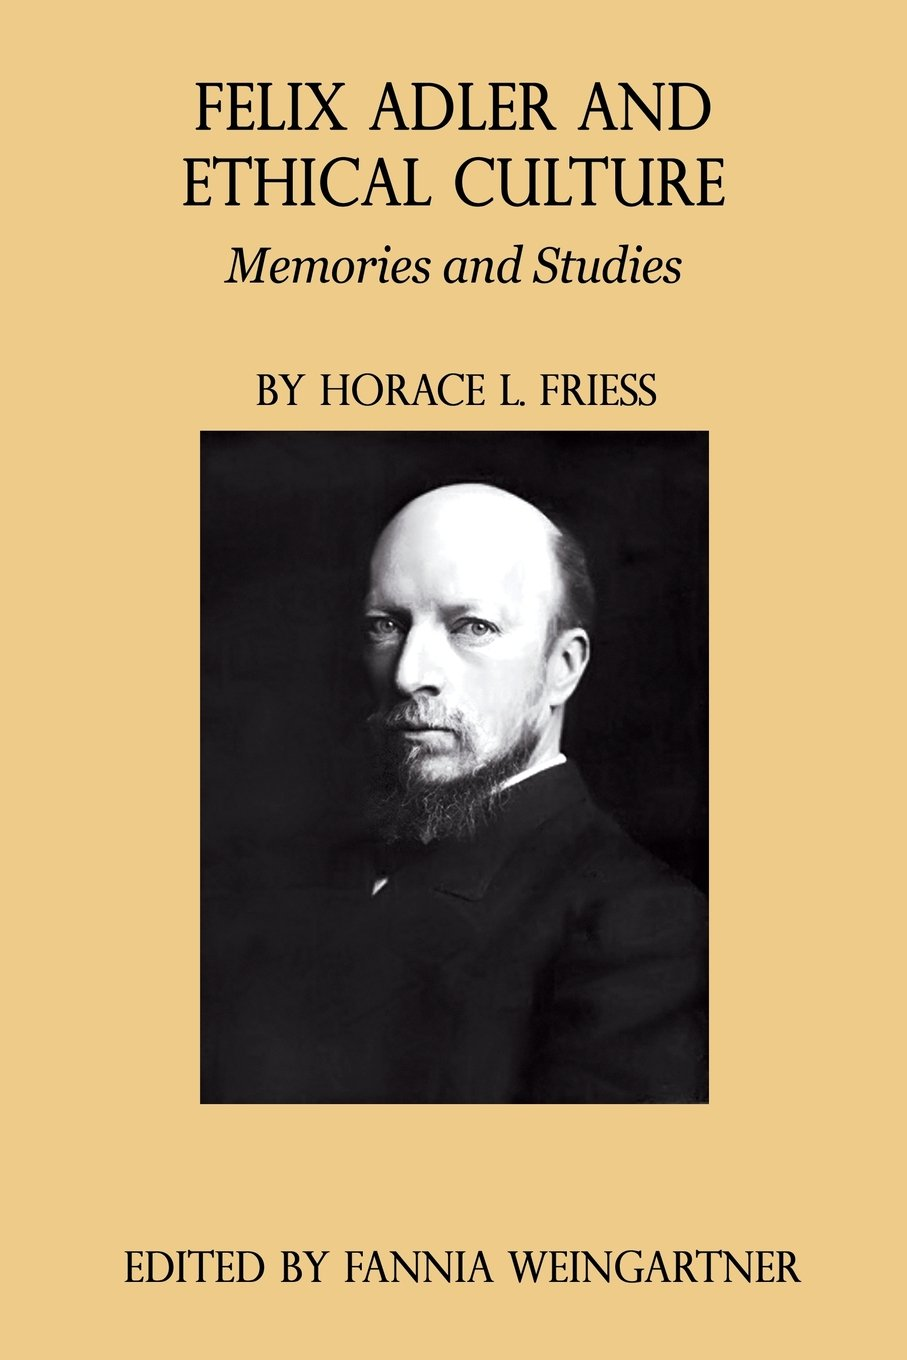 Learn more about the philosophy of Felix Adler with this book by author Horace Friess by clicking the link below.